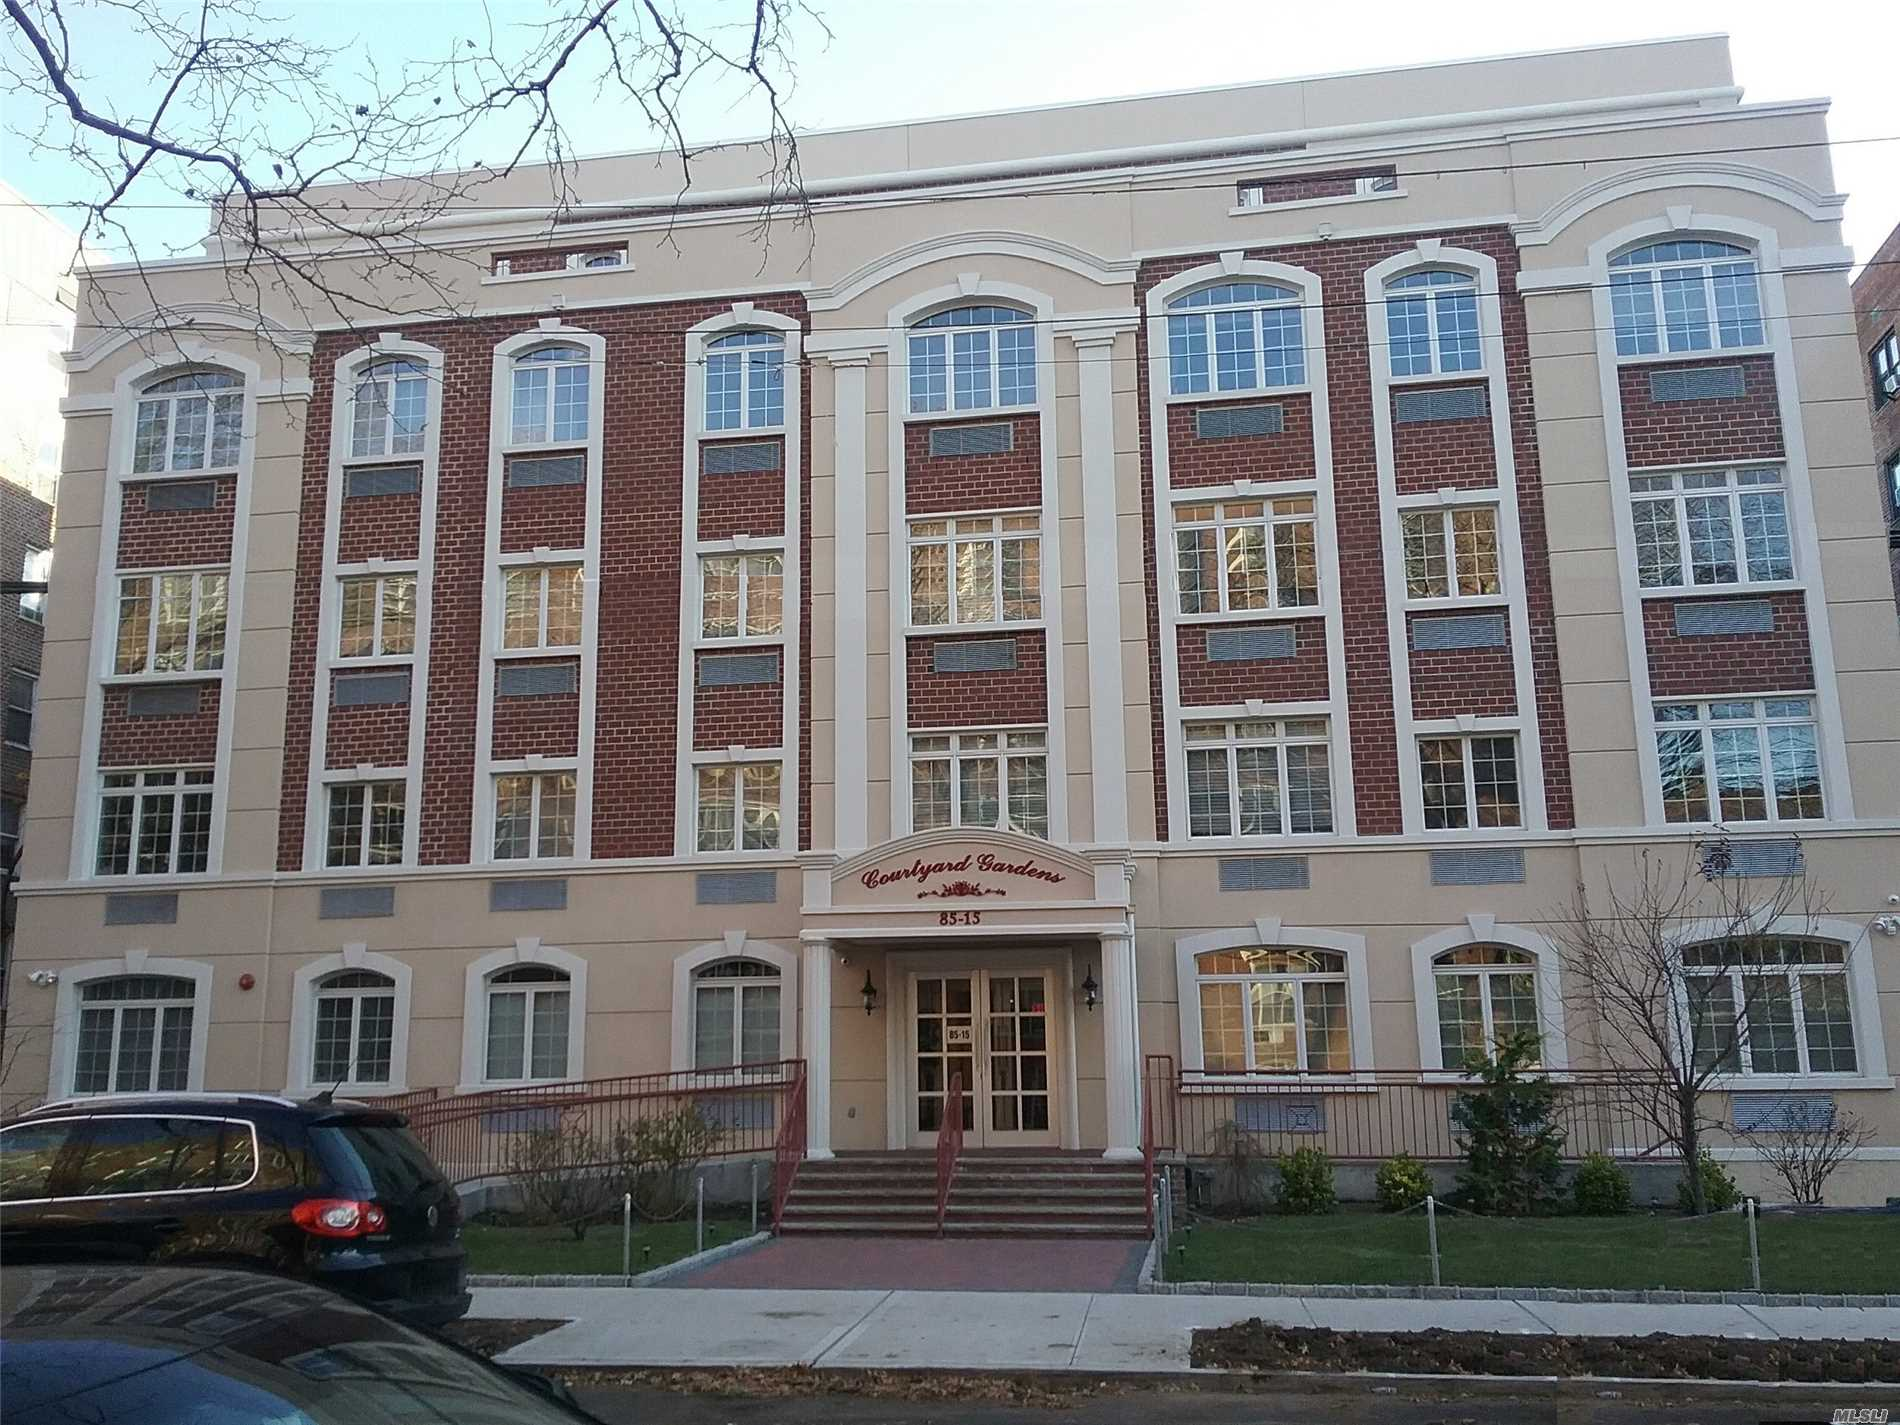 Beautiful New Building. Large Living Room/Dining Room, 1 Bedroom, 1 Full Bath, Efficiency Kitchen With Stainless Steel Appliances And Granite Counters. Balcony Off Living Room. Storage Unit And Outdoor Parking Space Included.Enclosed Courtyard, Laundry And Gym In Building. Close To M, J, Z Trains, Short Bus Trip To Lirr Or E Train. One Small Pet Under 15 Lbs. No Smoking.